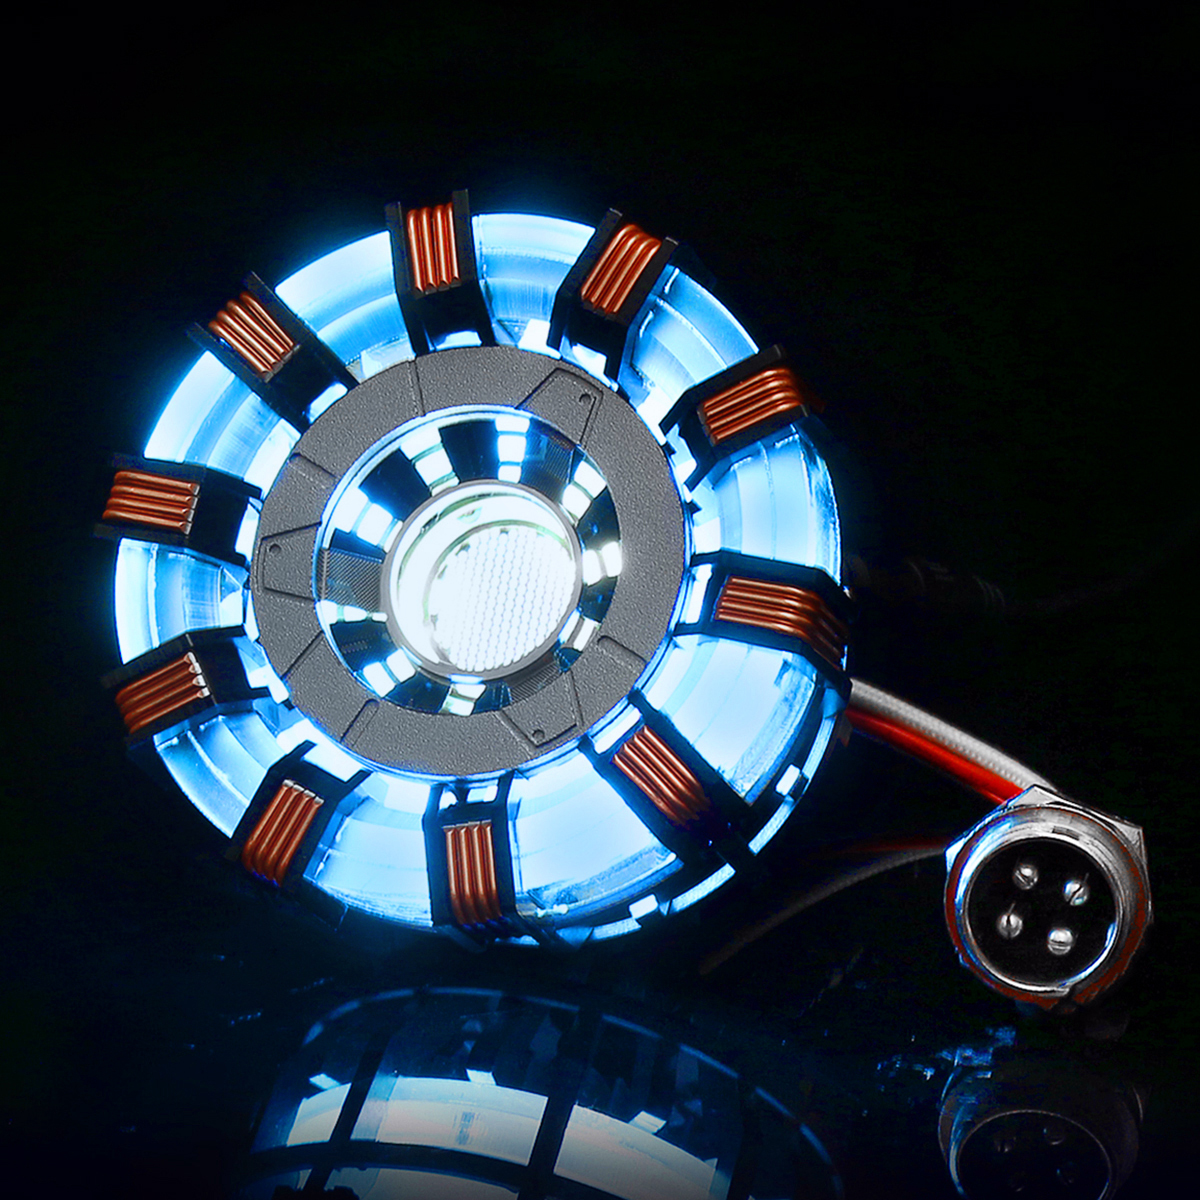 50% OFF for MK2 Tony DIY Arc Reactor Lam